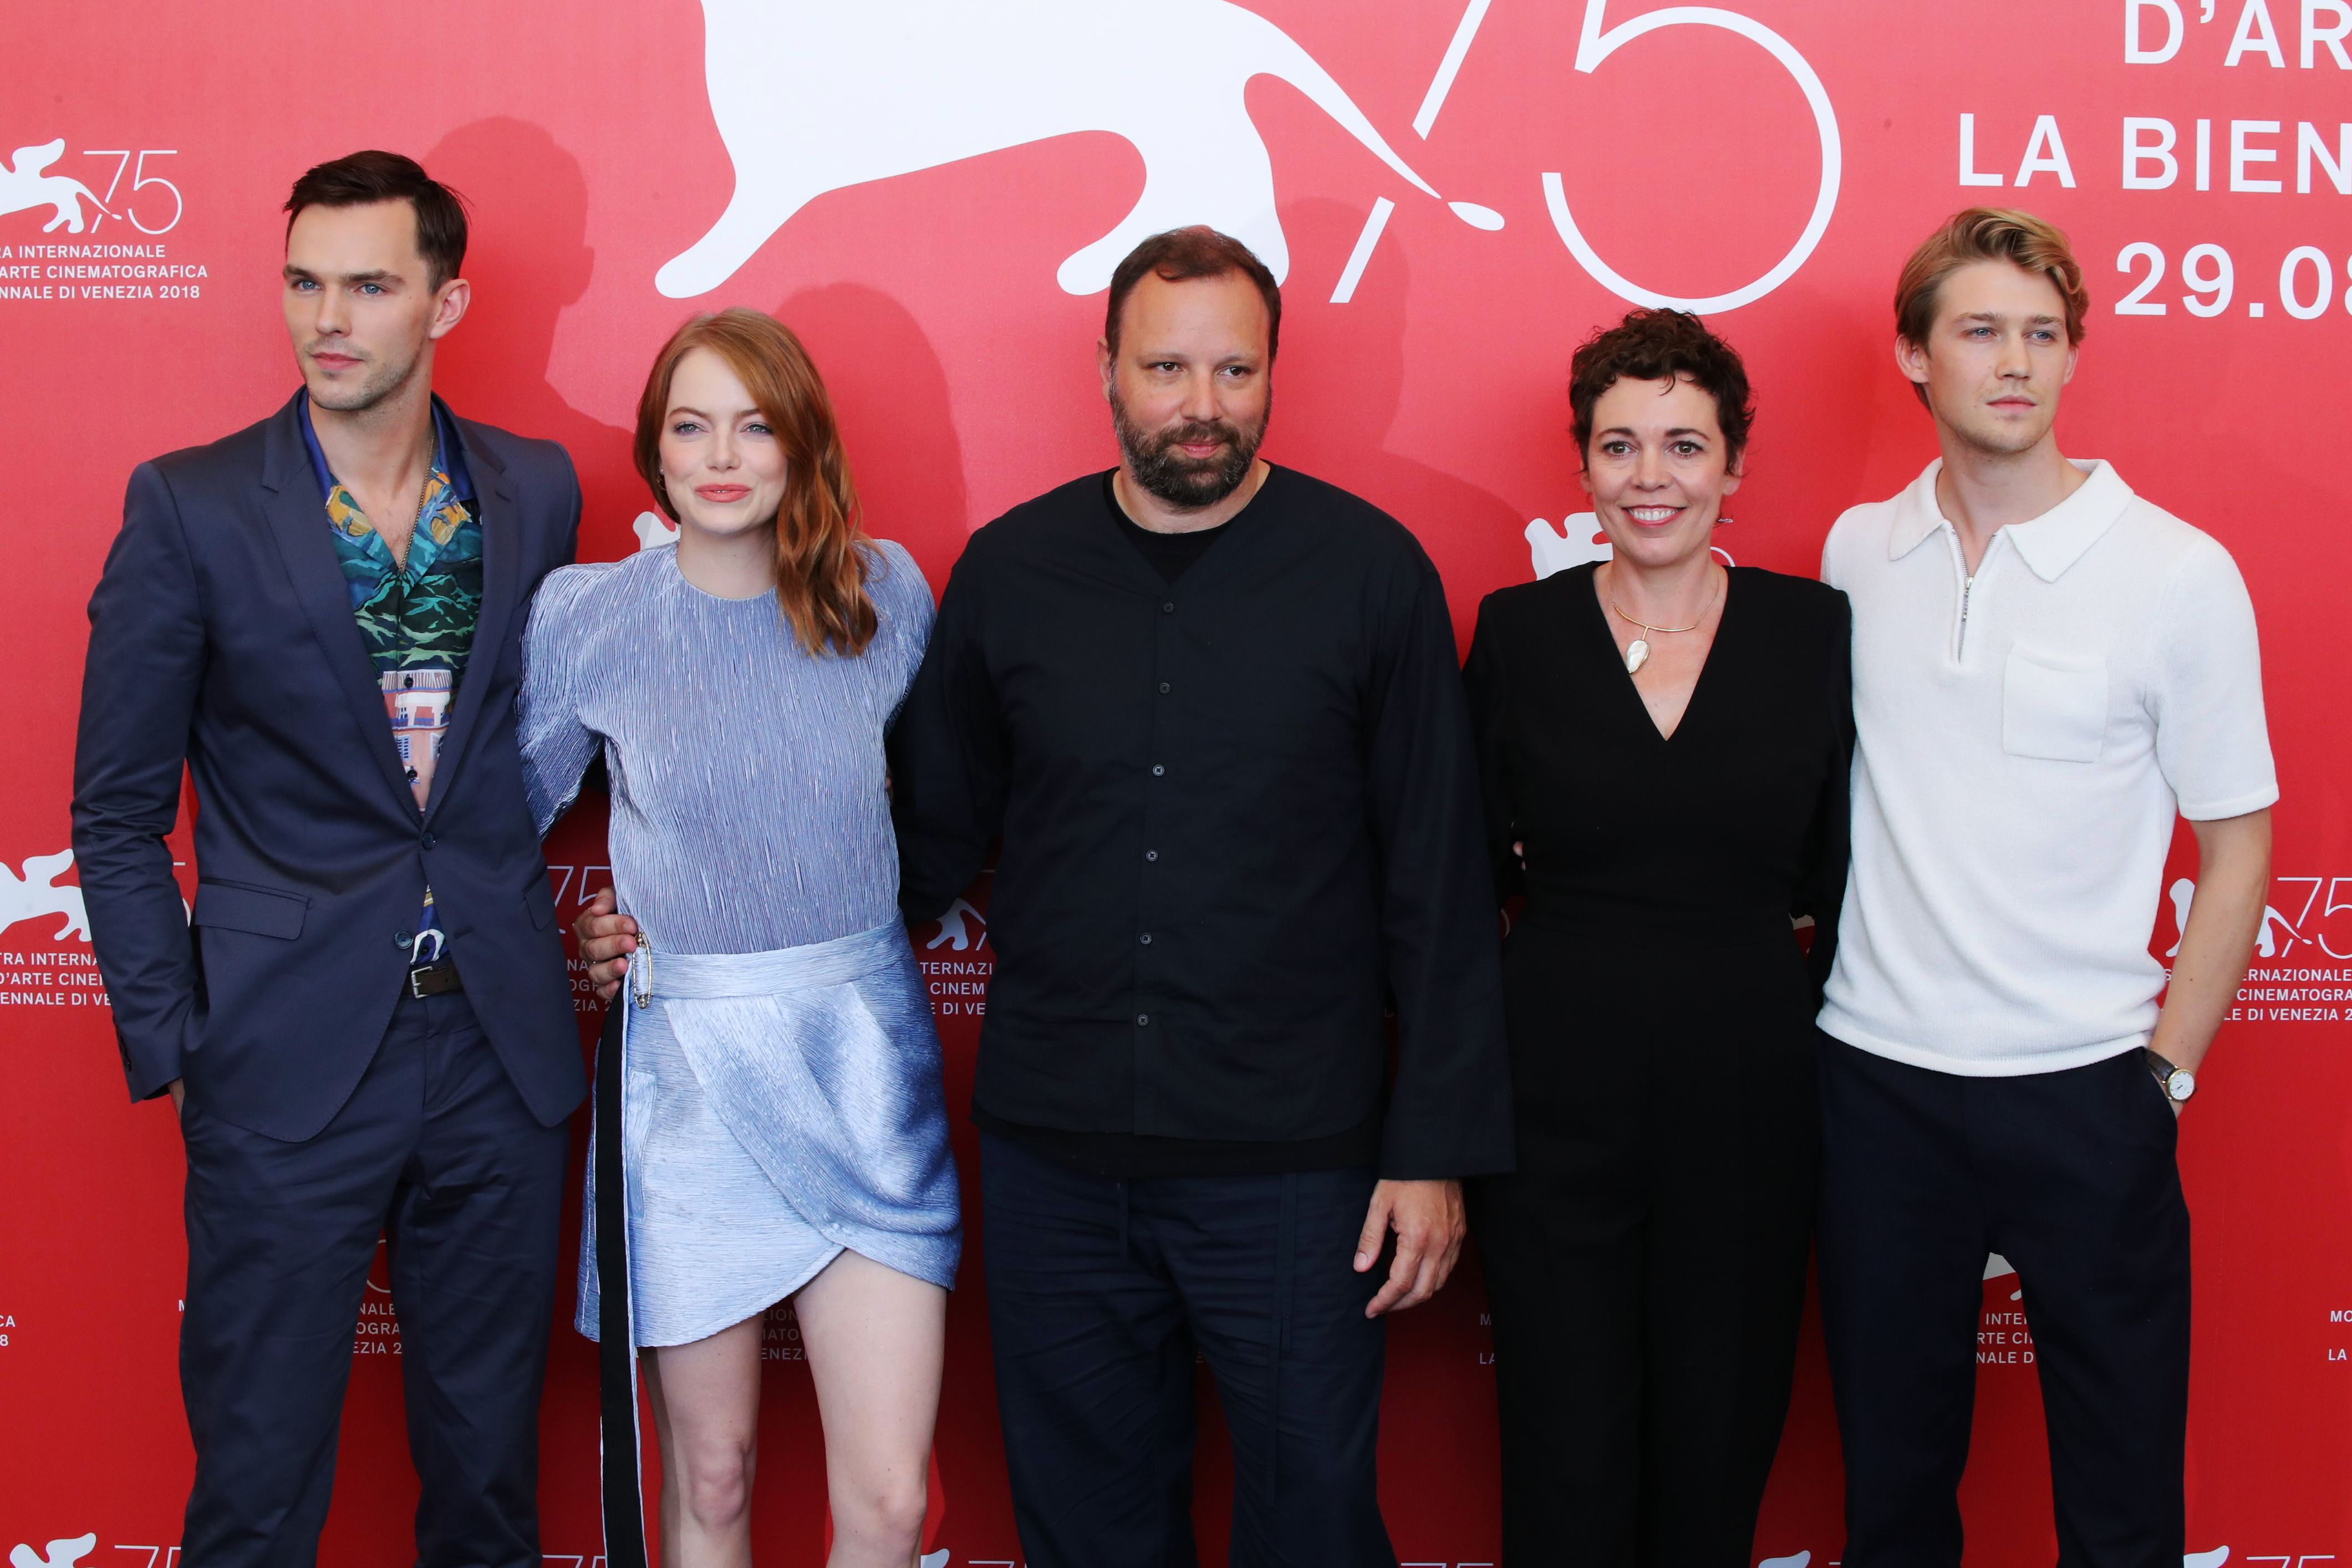 Nicholas Hoult, Emma Stone, Yorgos Lanthimos, Olivia Colman and Joe Alwyn'The Favourite' photocall, 75th Venice International Film Festival, Italy - 30 Aug 2018